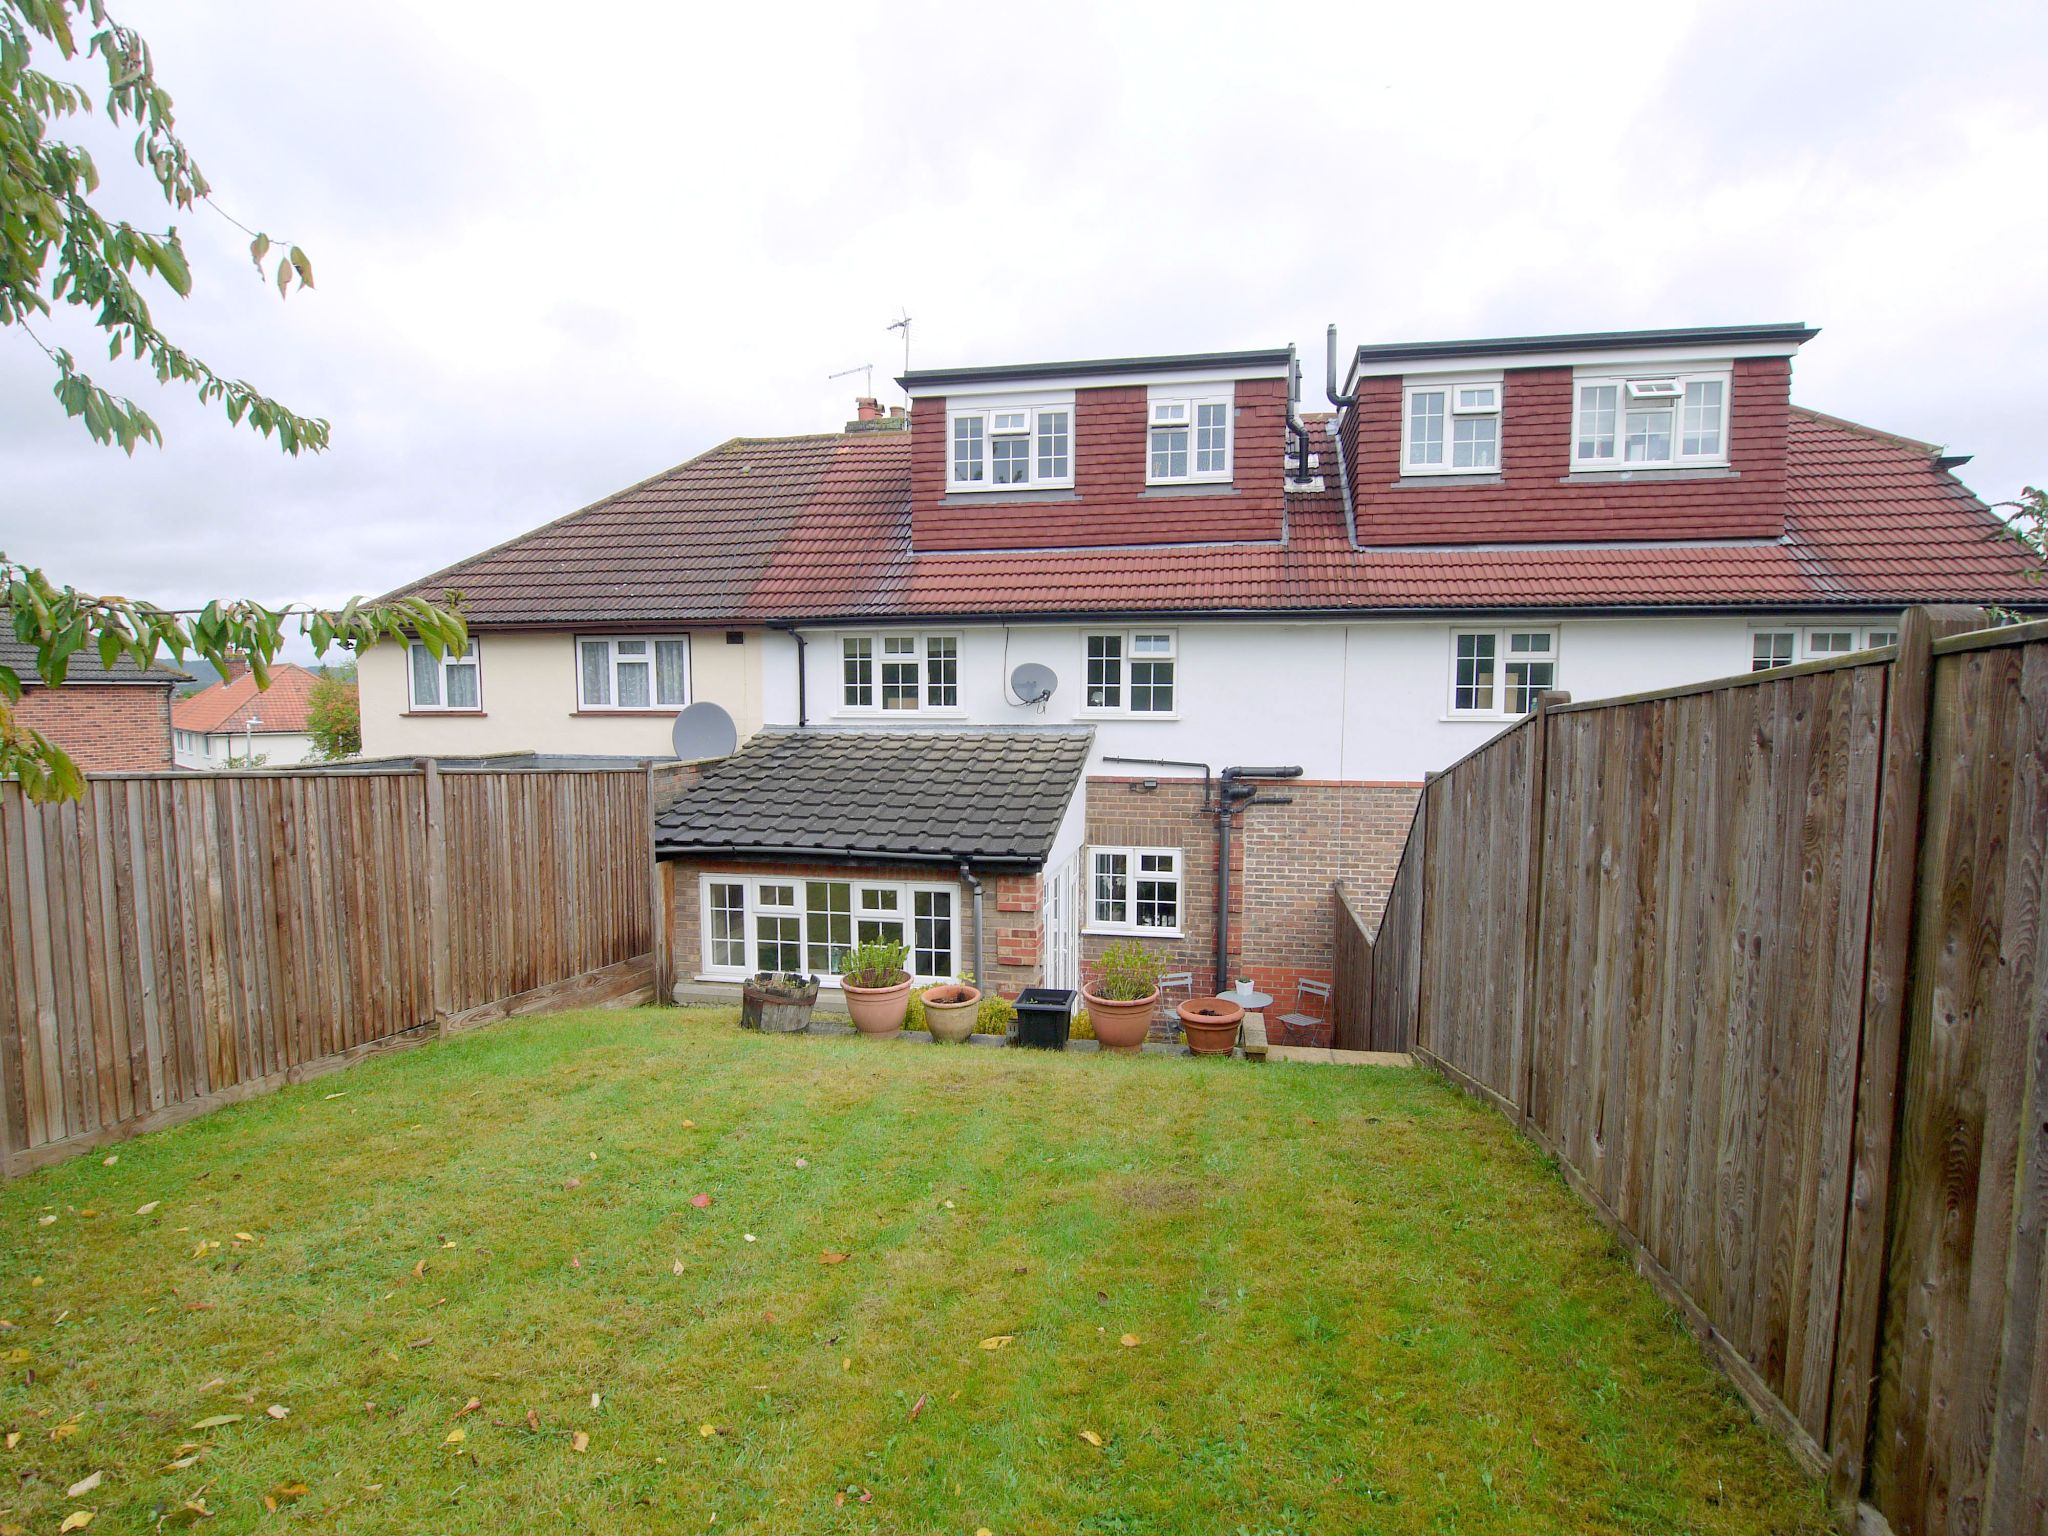 4 bedroom mid terraced house Sold in Sevenoaks - Photograph 15